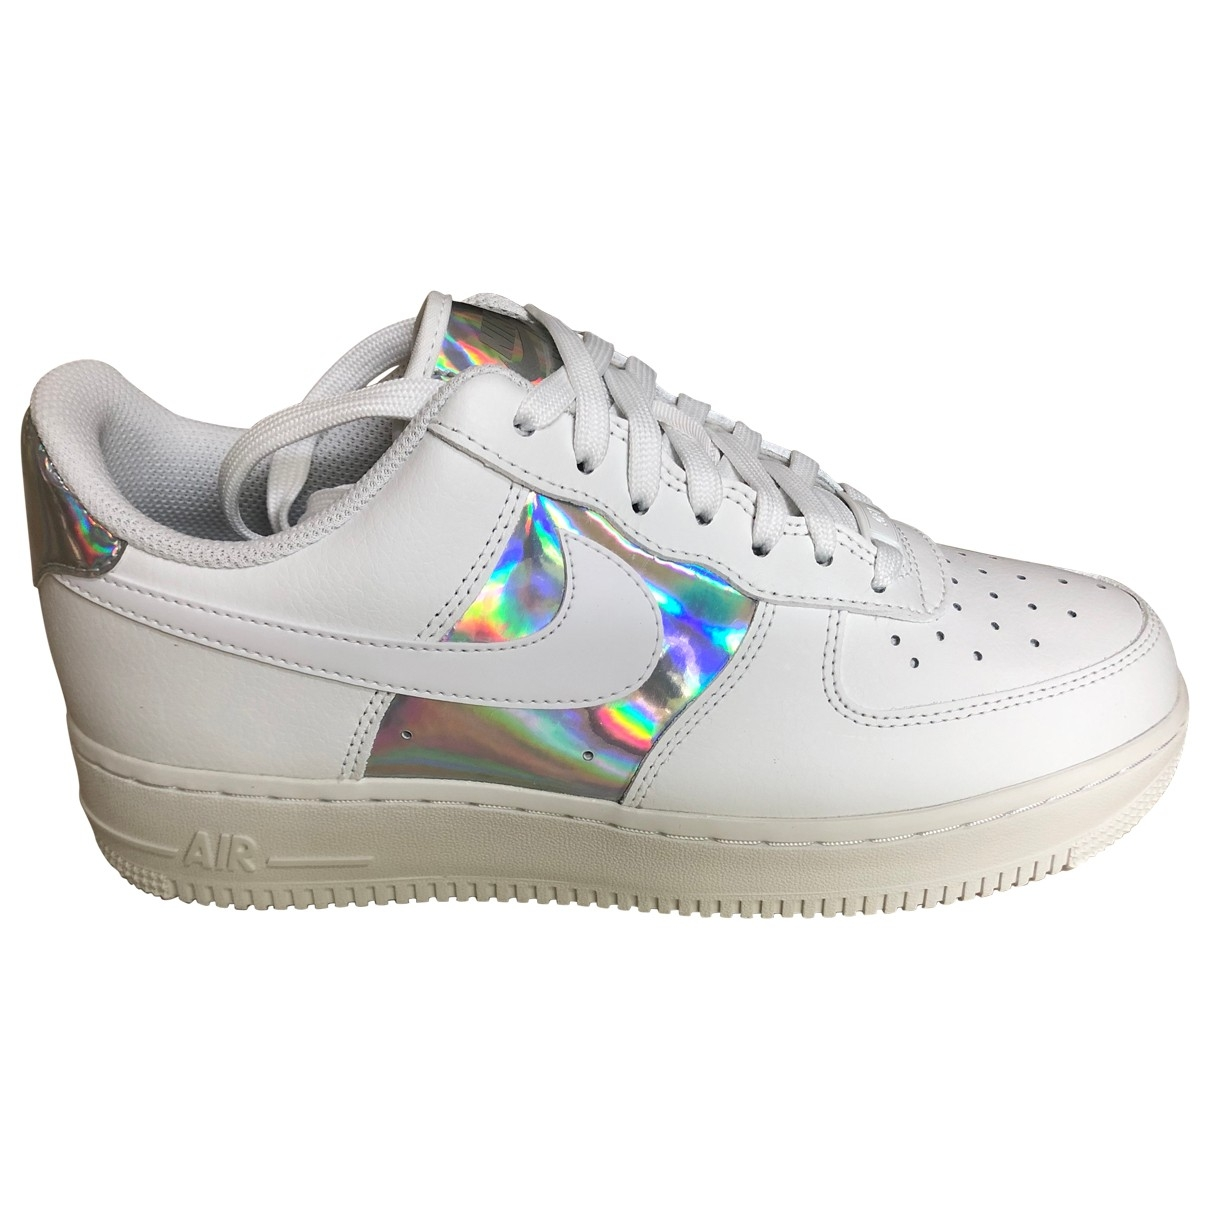 Nike Air Force 1 White Leather Trainers for Women 40 EU